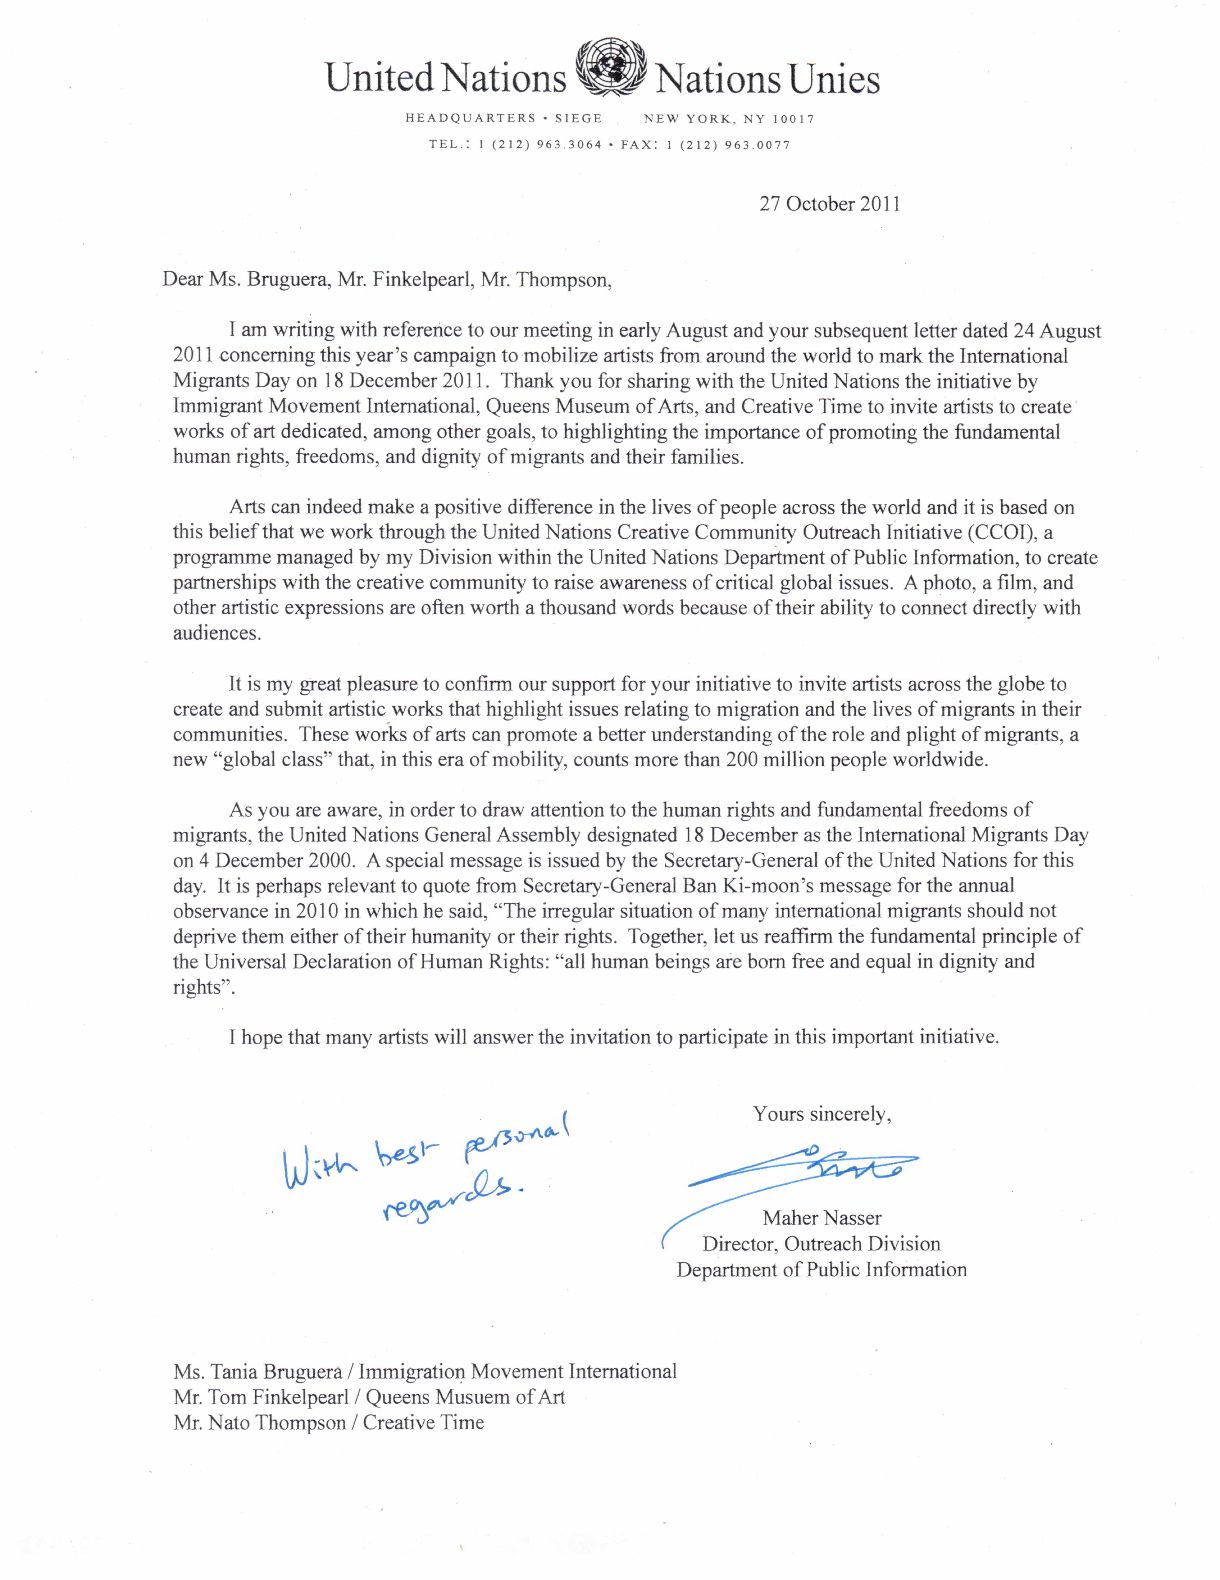 sample support letter for immigration Melo.in tandem.co